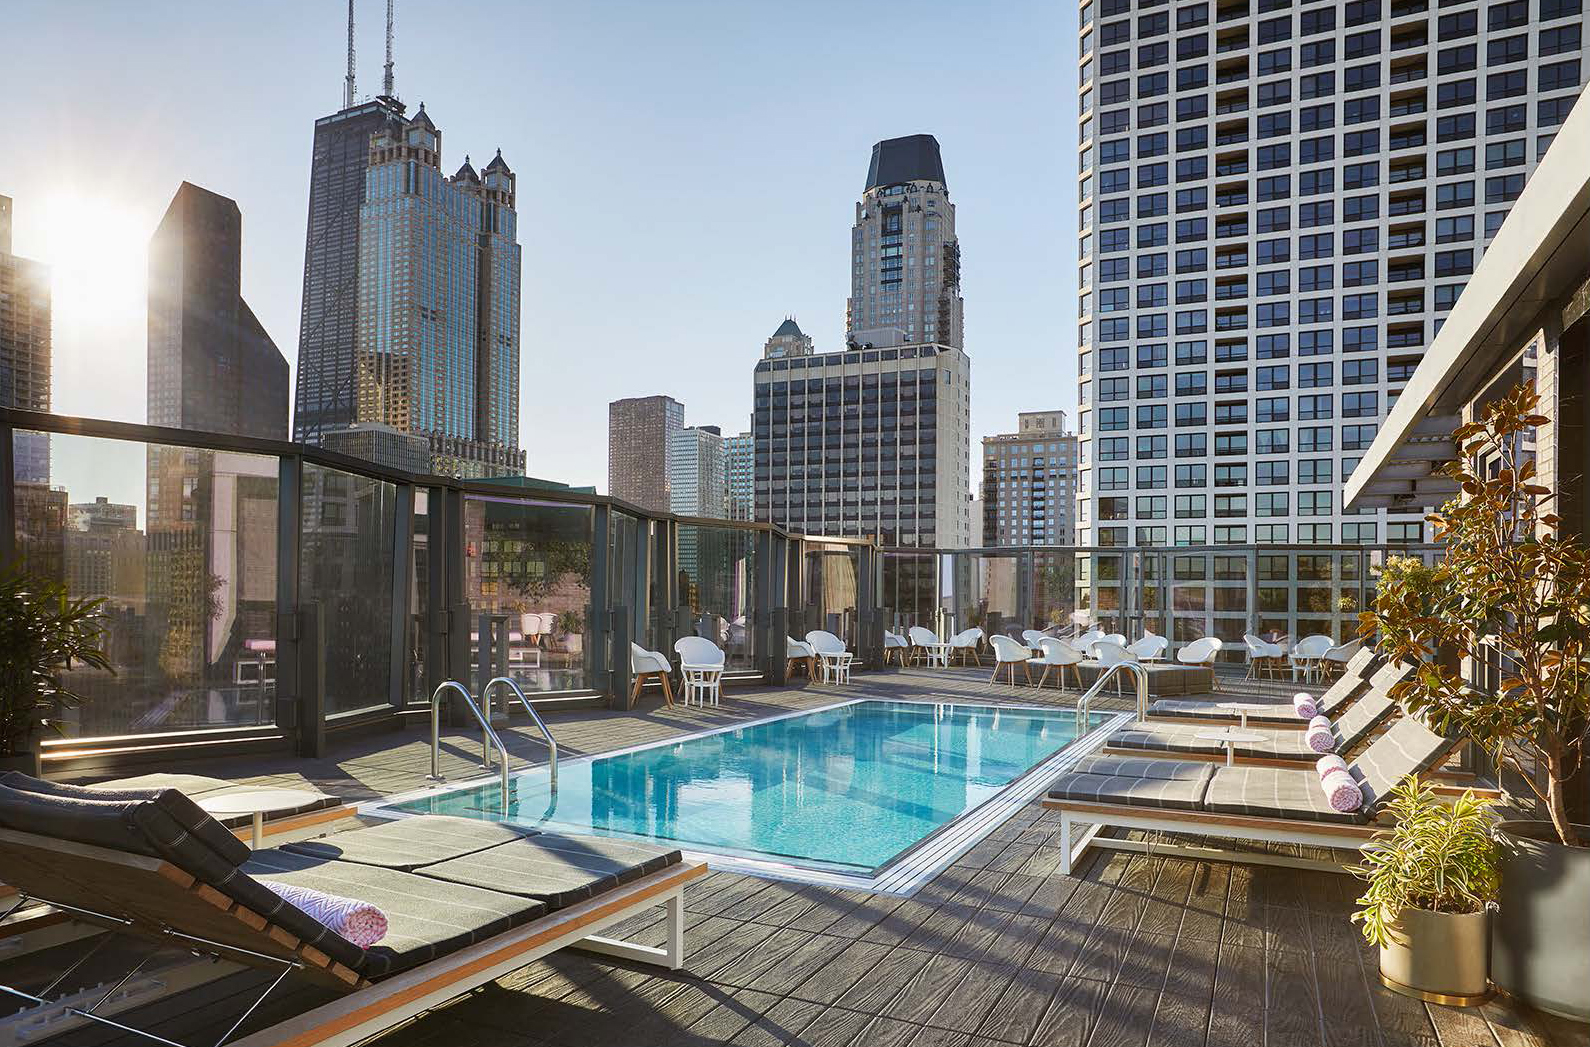 The rooftop lounge, Devereaux, helmed by Boka Restaurant Group, offers an outdoor pool and landscaped terrace, with views of Lake Michigan and the Chicago skyline.